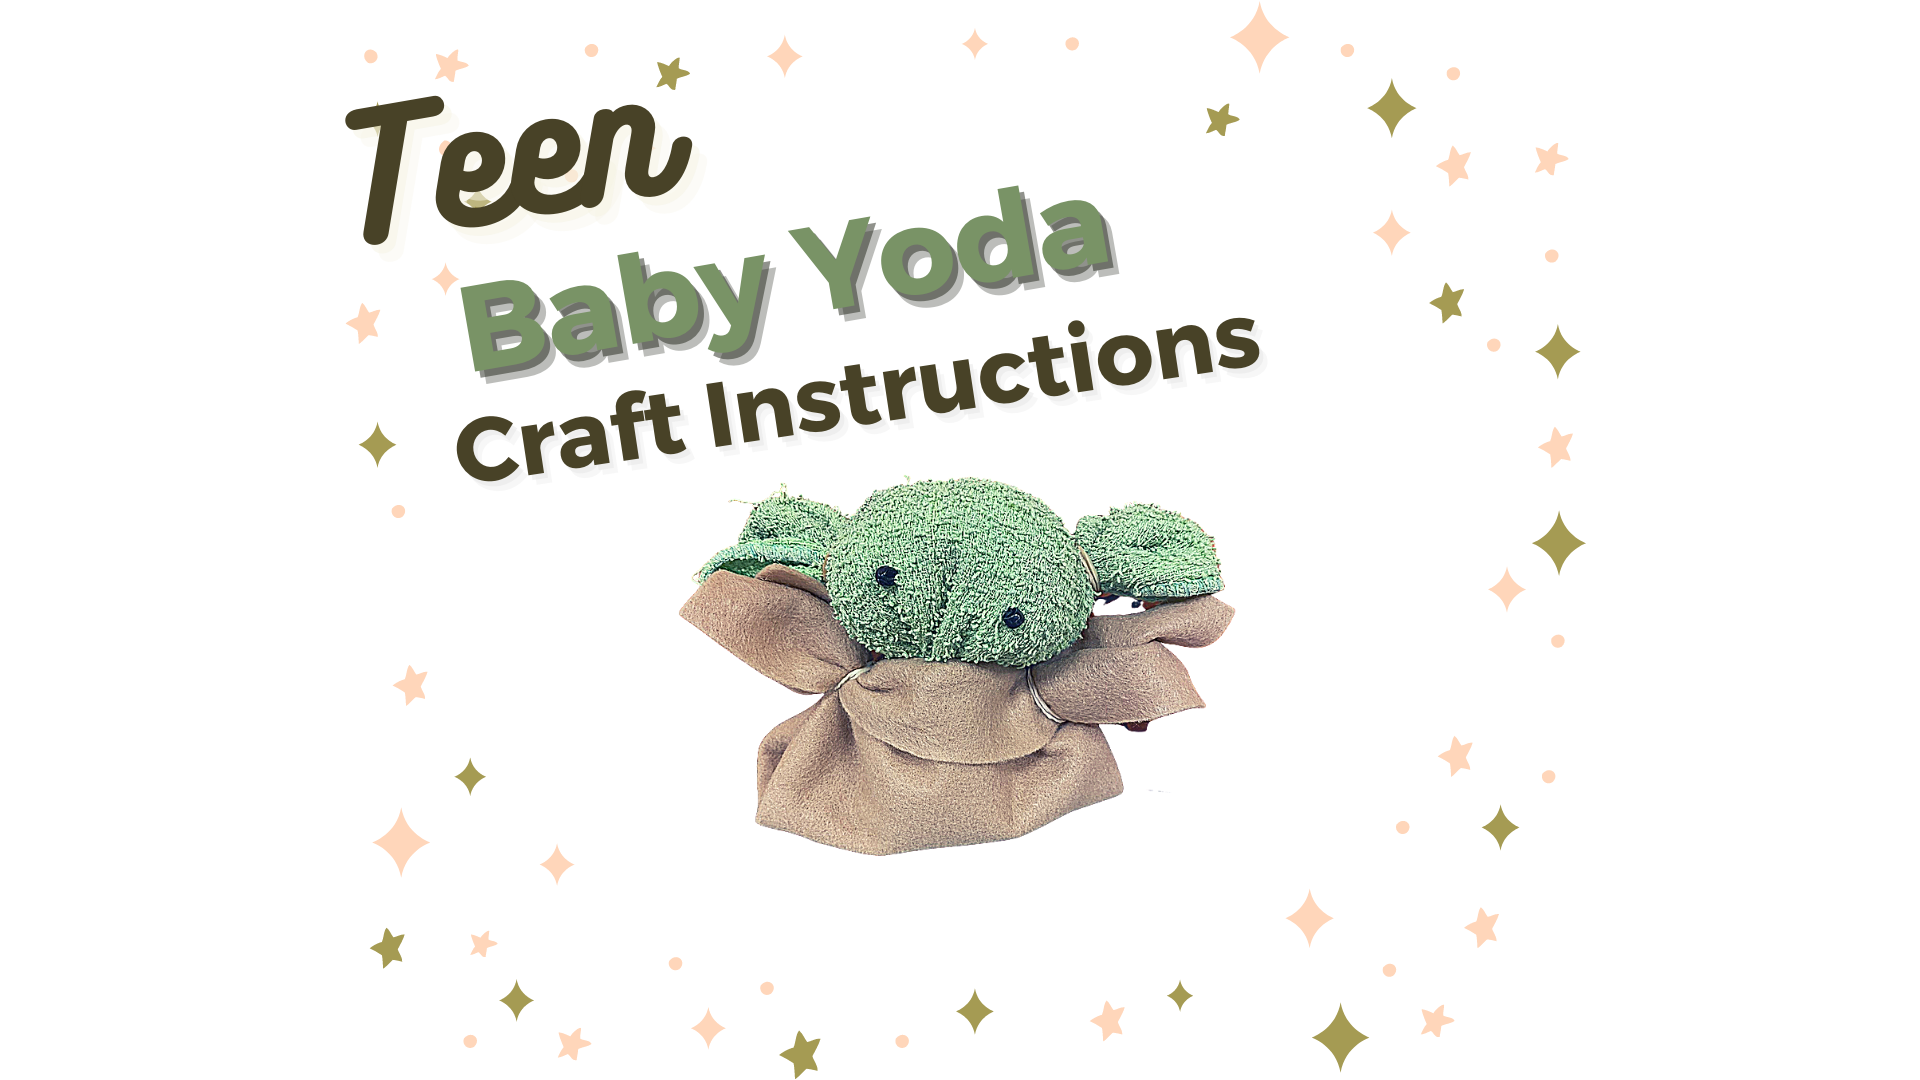 Teen Baby Yoda Craft